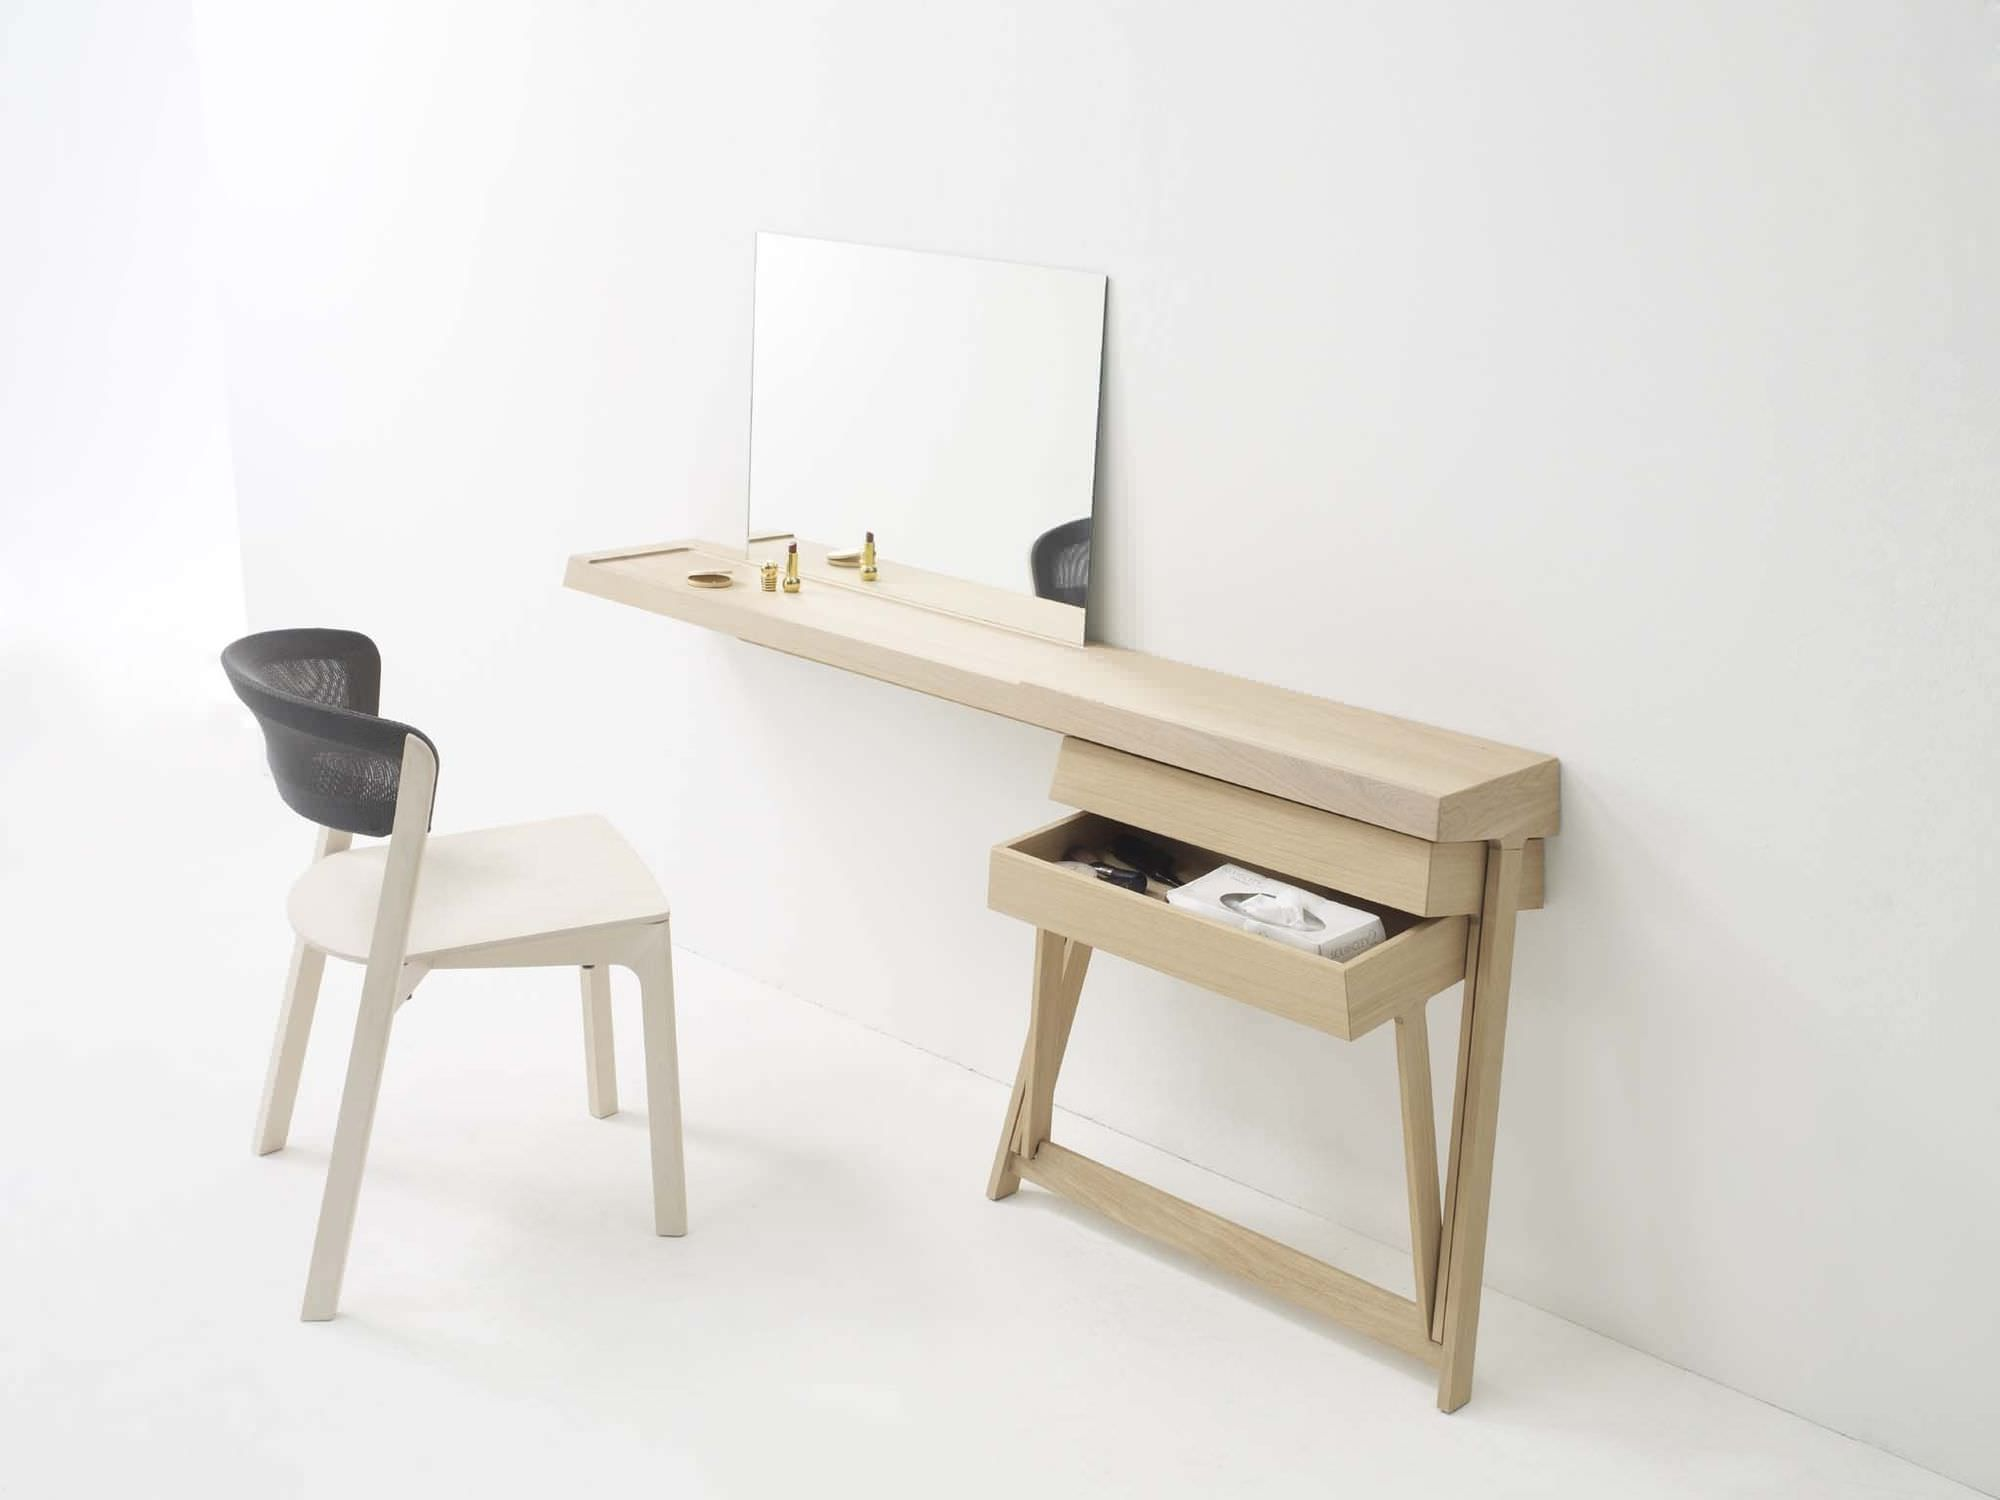 Modern dressing table with mirror - Pleasureable Oak Unfinished Wall Mount Dressing Tables With Storage And Square Mirror Added White Armless Chairs